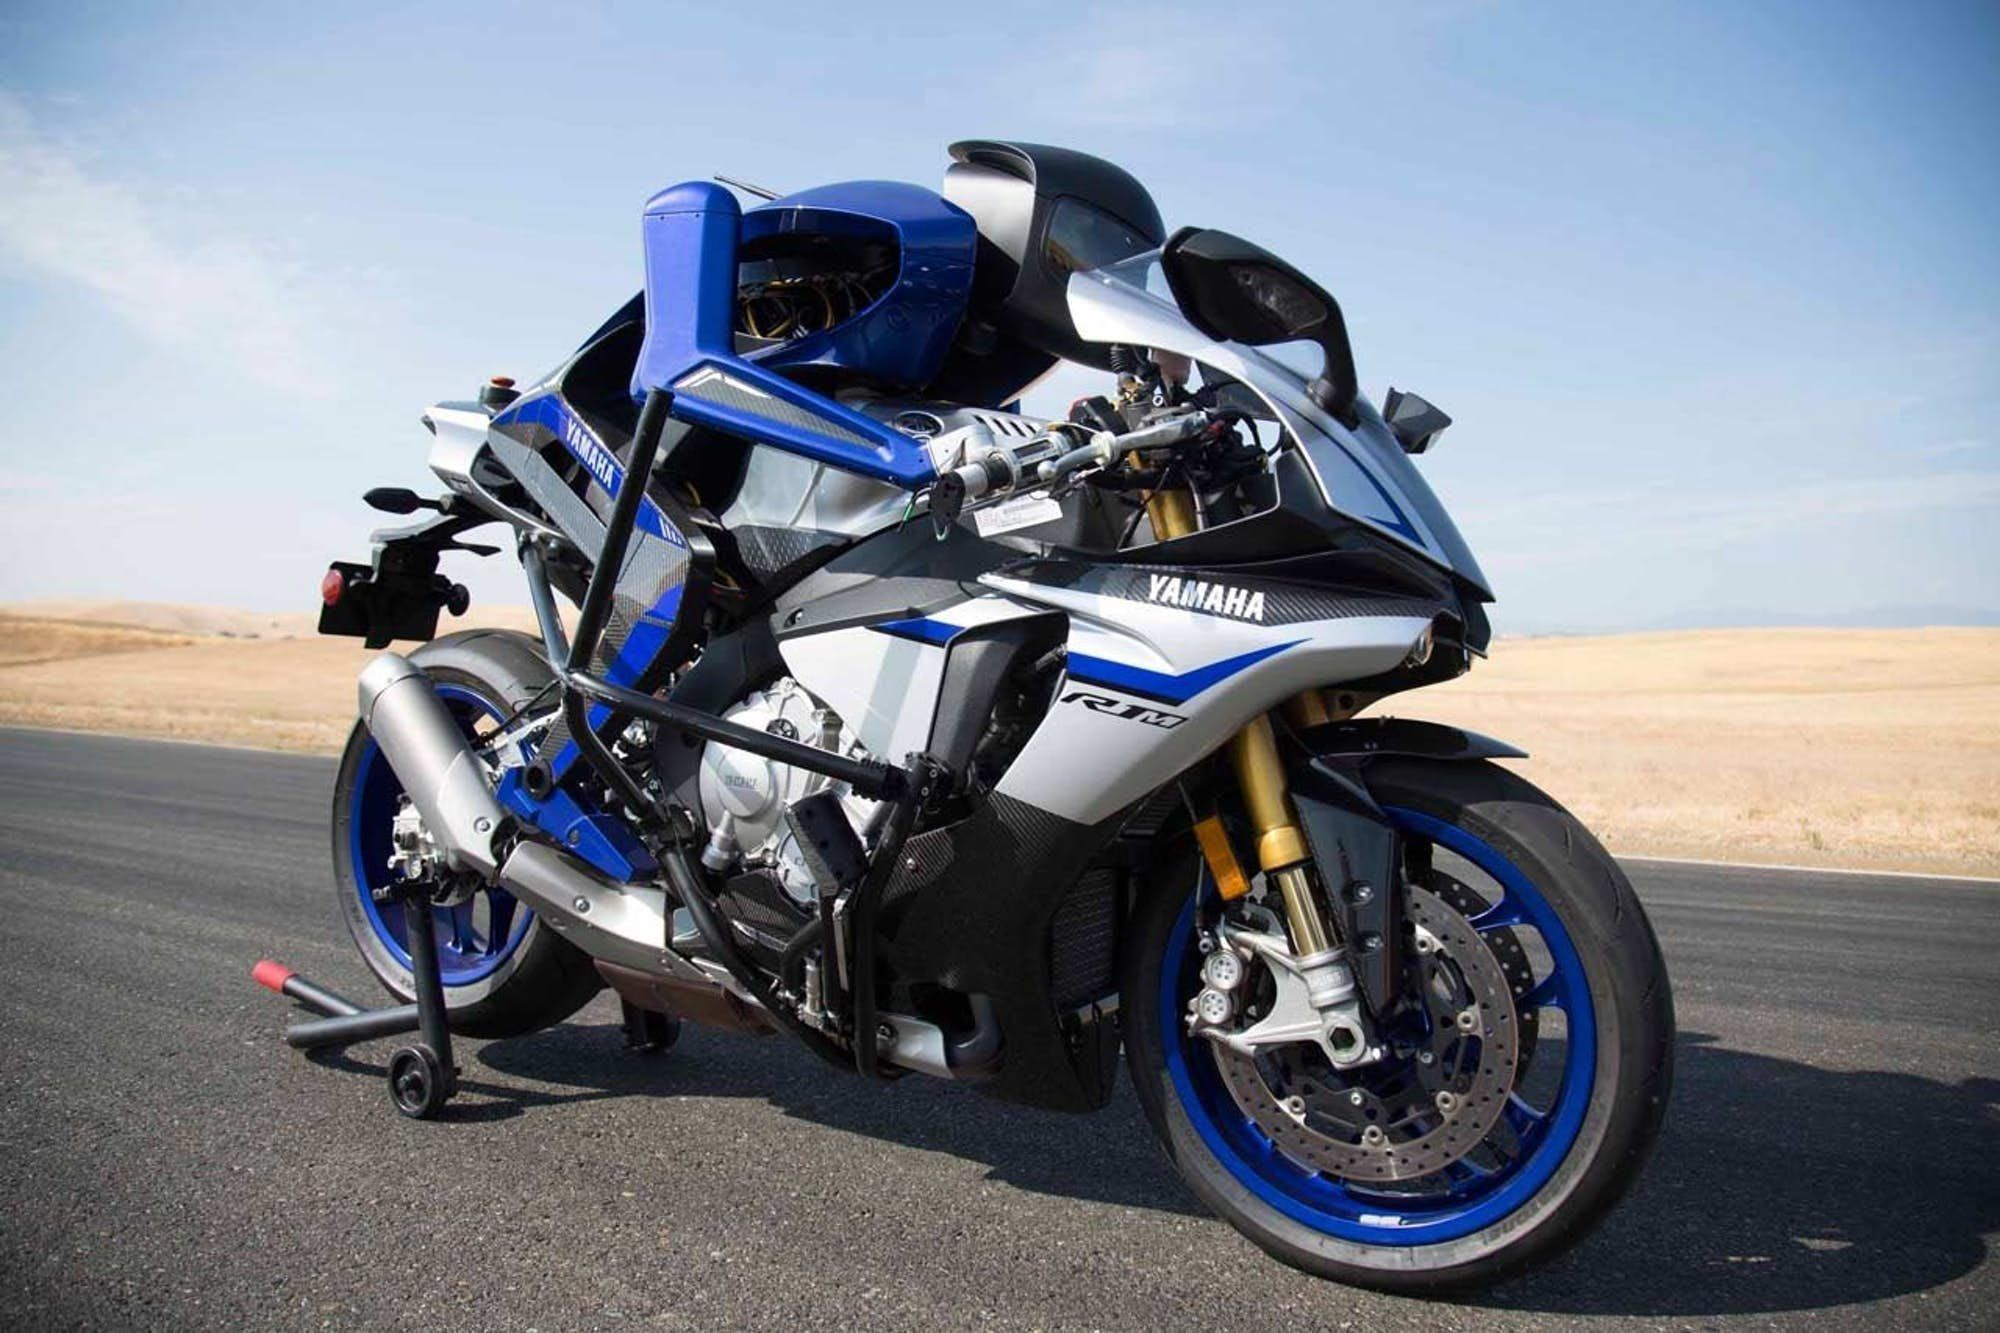 2020 Yamaha R1 Model from 2020 Yamaha YzfR1 Release Date